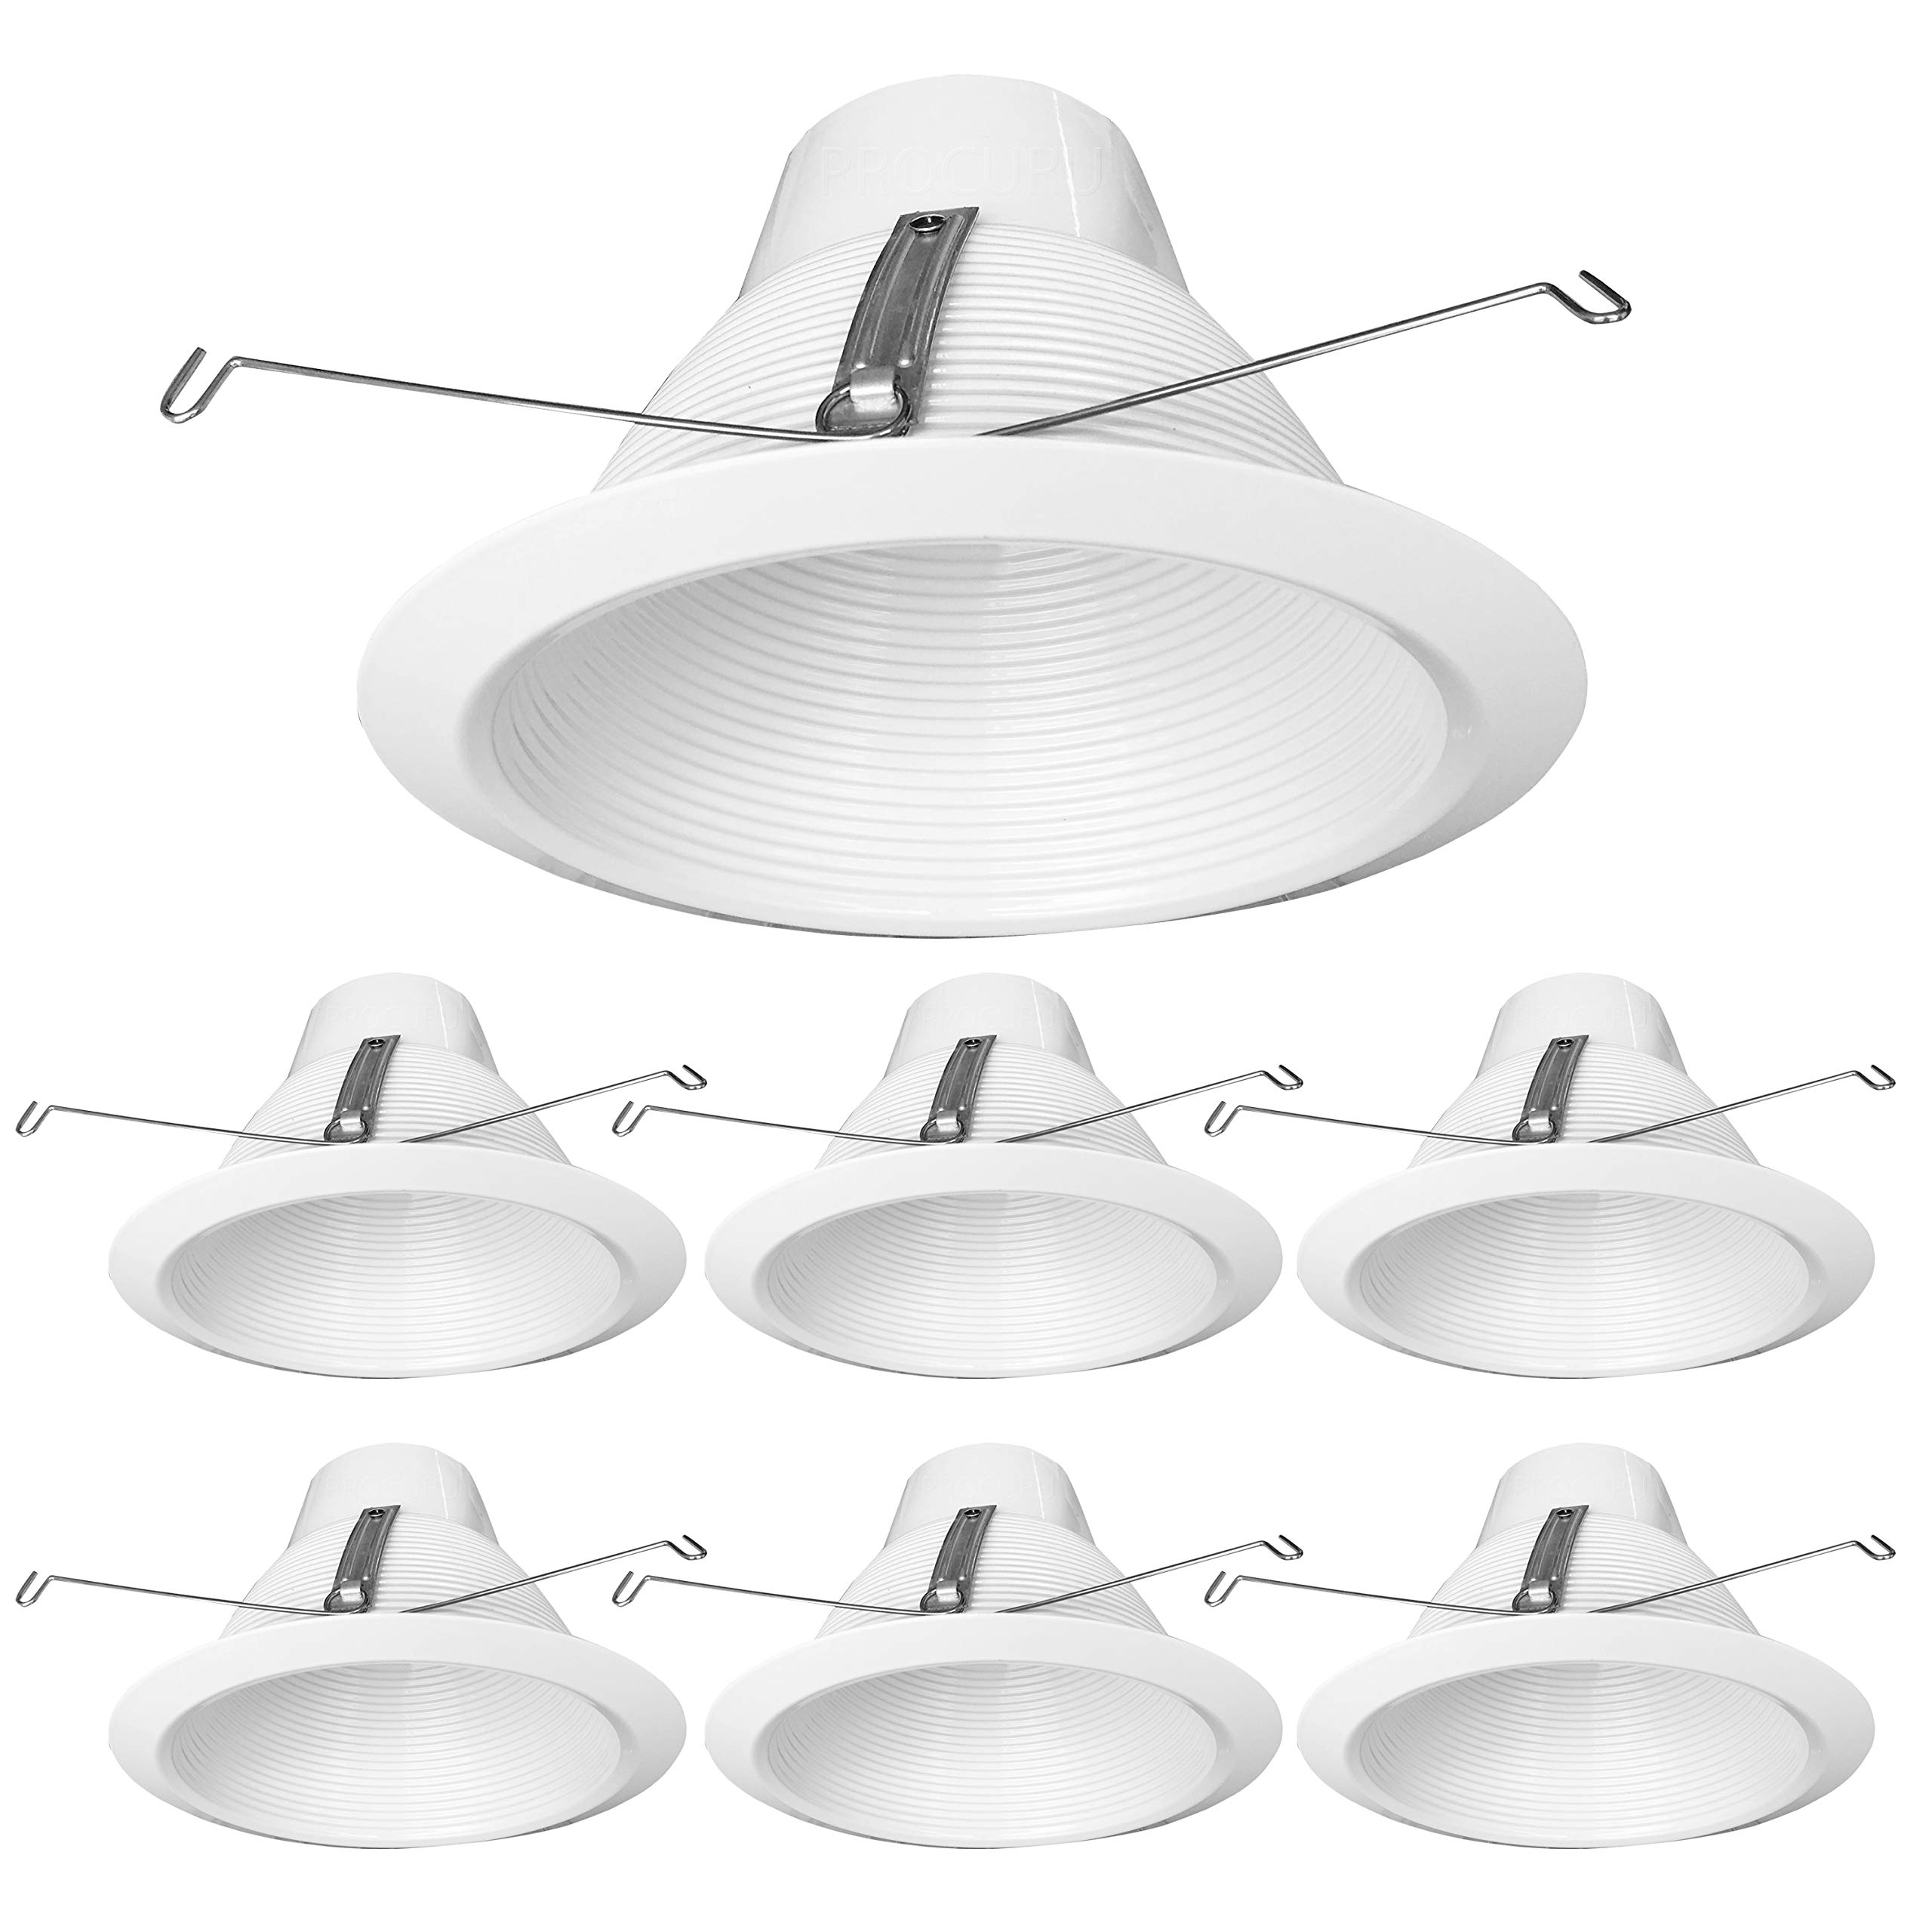 PROCURU 6-Pack 6-Inch Recessed Can Light Metal Trim, Cone Baffle Style, Air-Tight, IC-Rated, White (6-Pack) by PROCURU